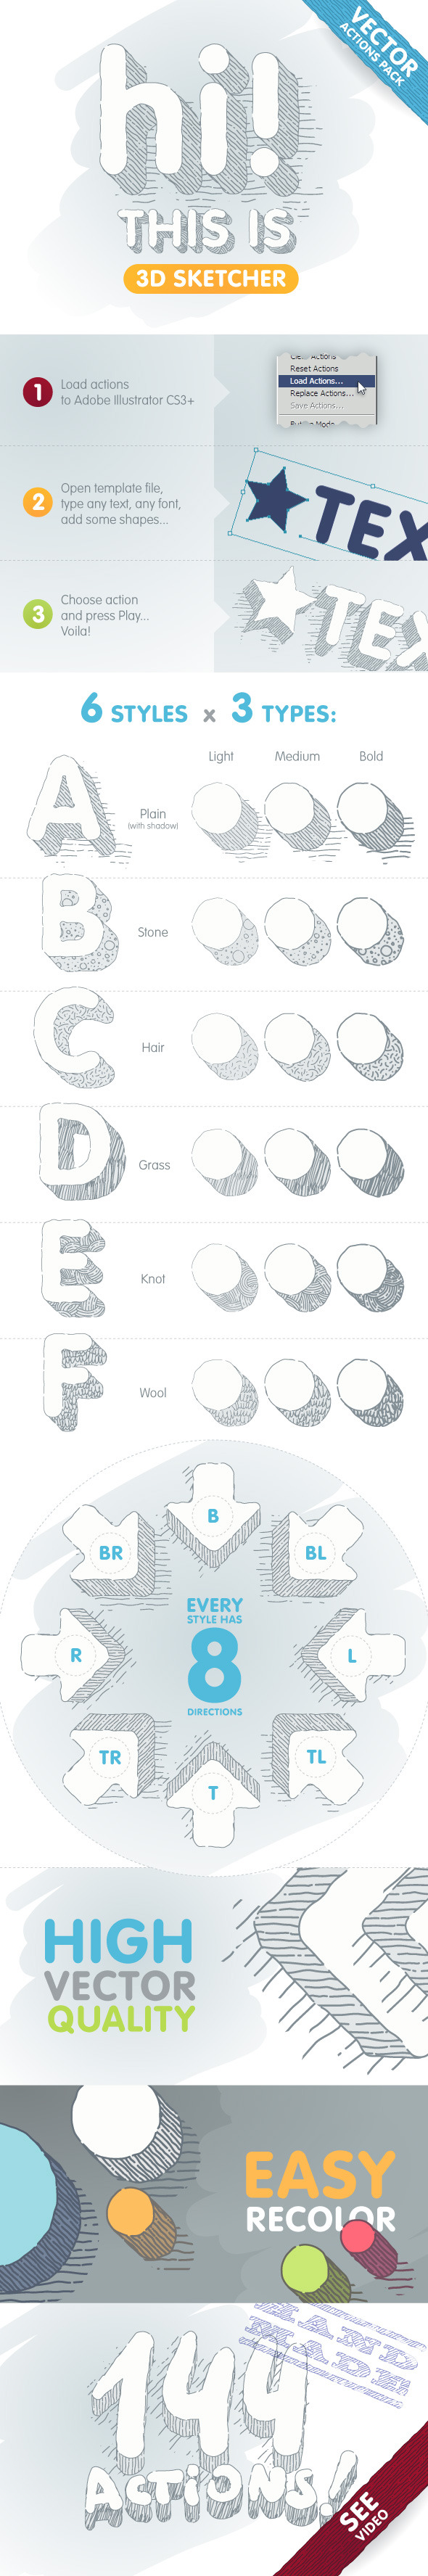 3D Sketcher - Vector Actions Pack - Actions Illustrator